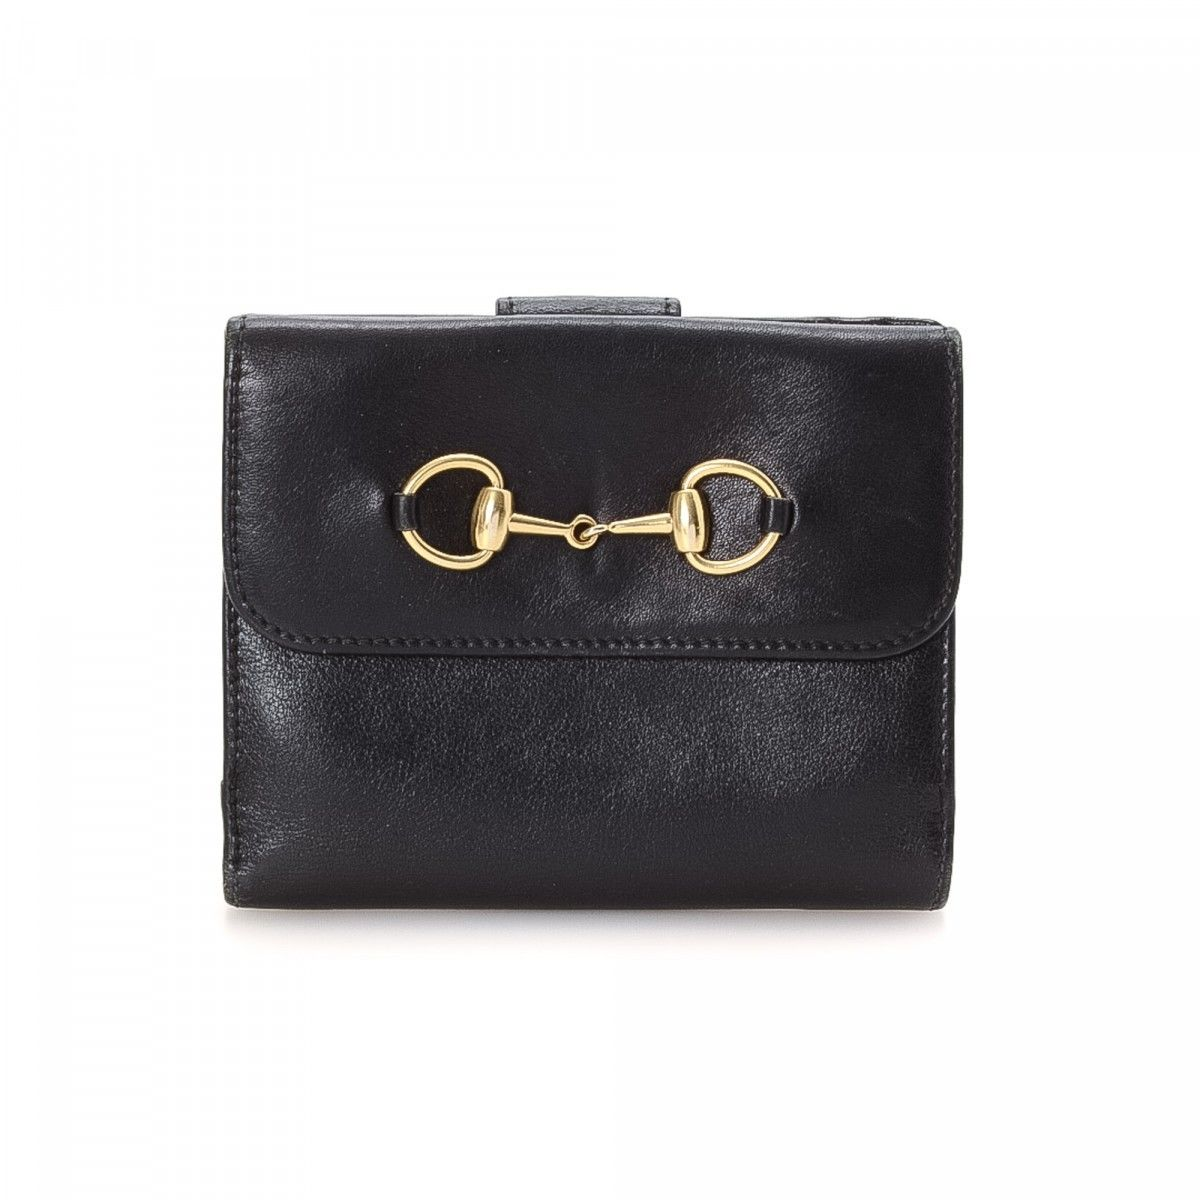 Gucci Horsebit Wallet Leather Lxrandco Pre Owned Luxury Vine